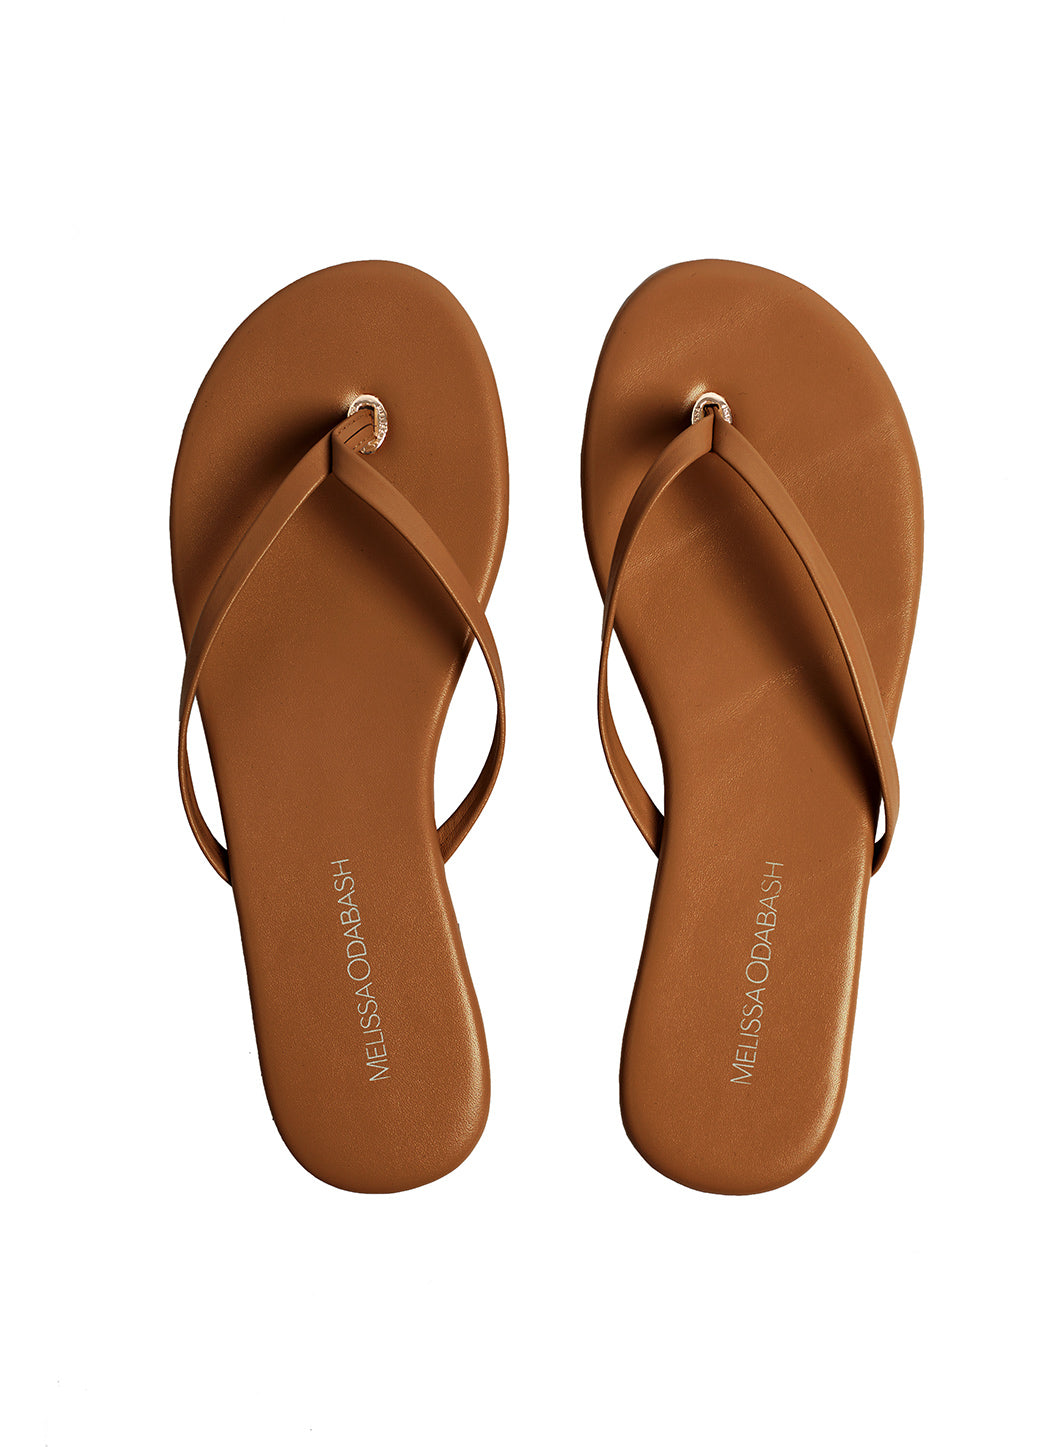 Leather Flip Flops Tan - Melissa Odabash Accessories